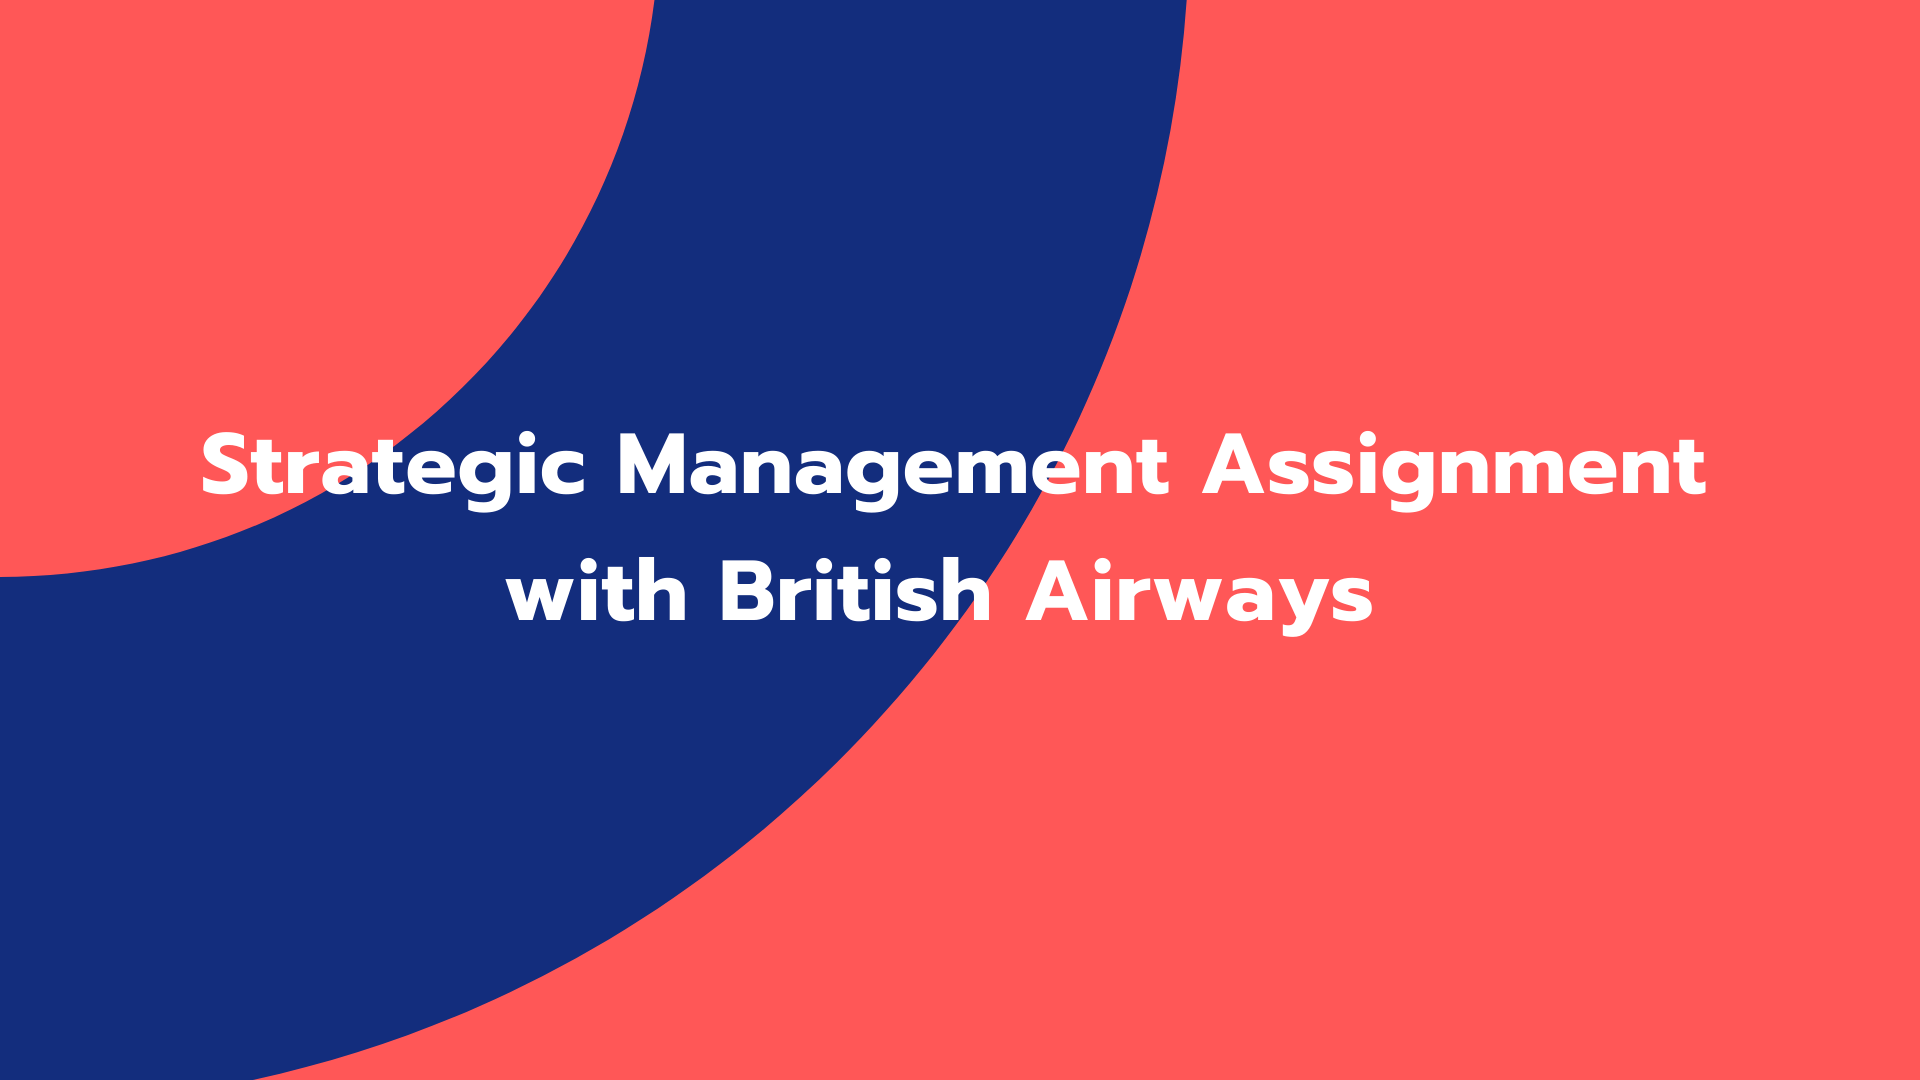 Strategic Management Assignment with British Airways